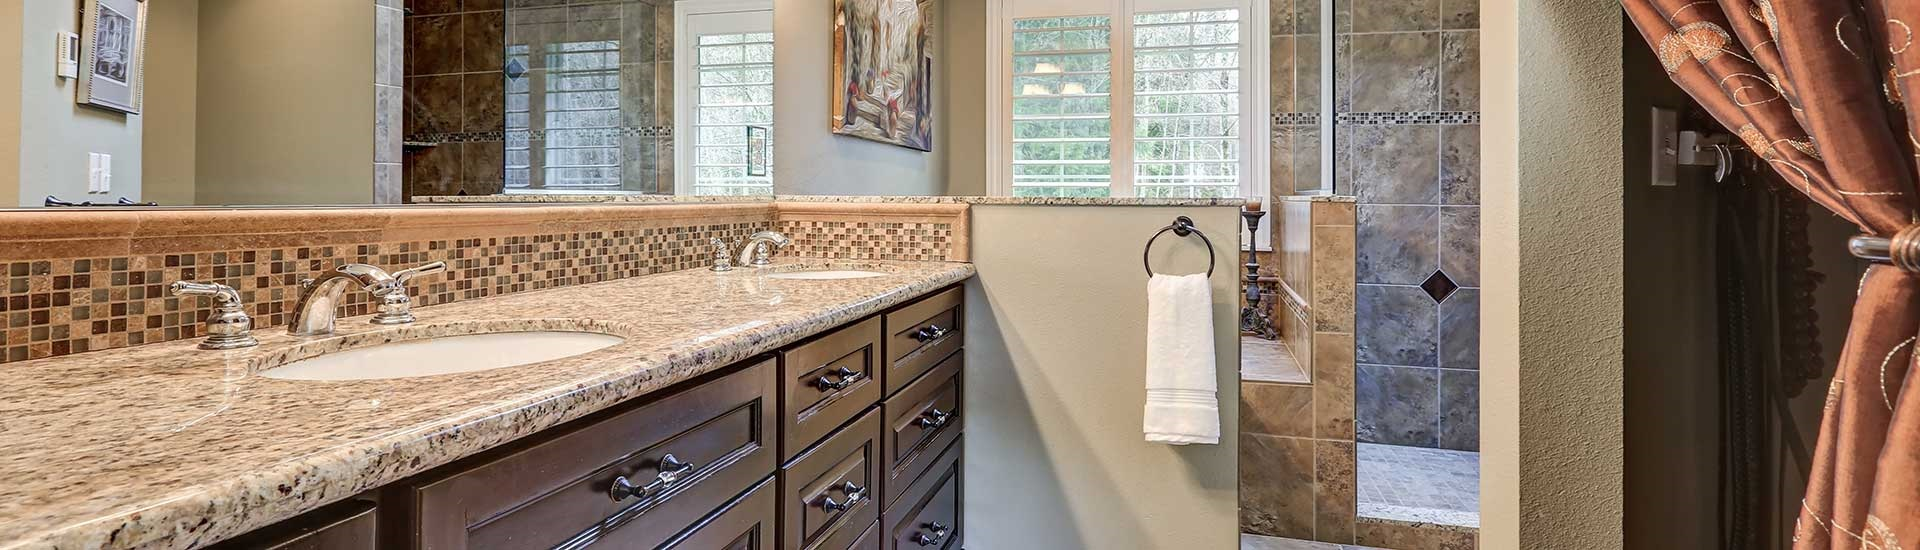 Houston Bathroom Remodeling Bathroom Remodeling Houston 03 Unique Builders Development Inc